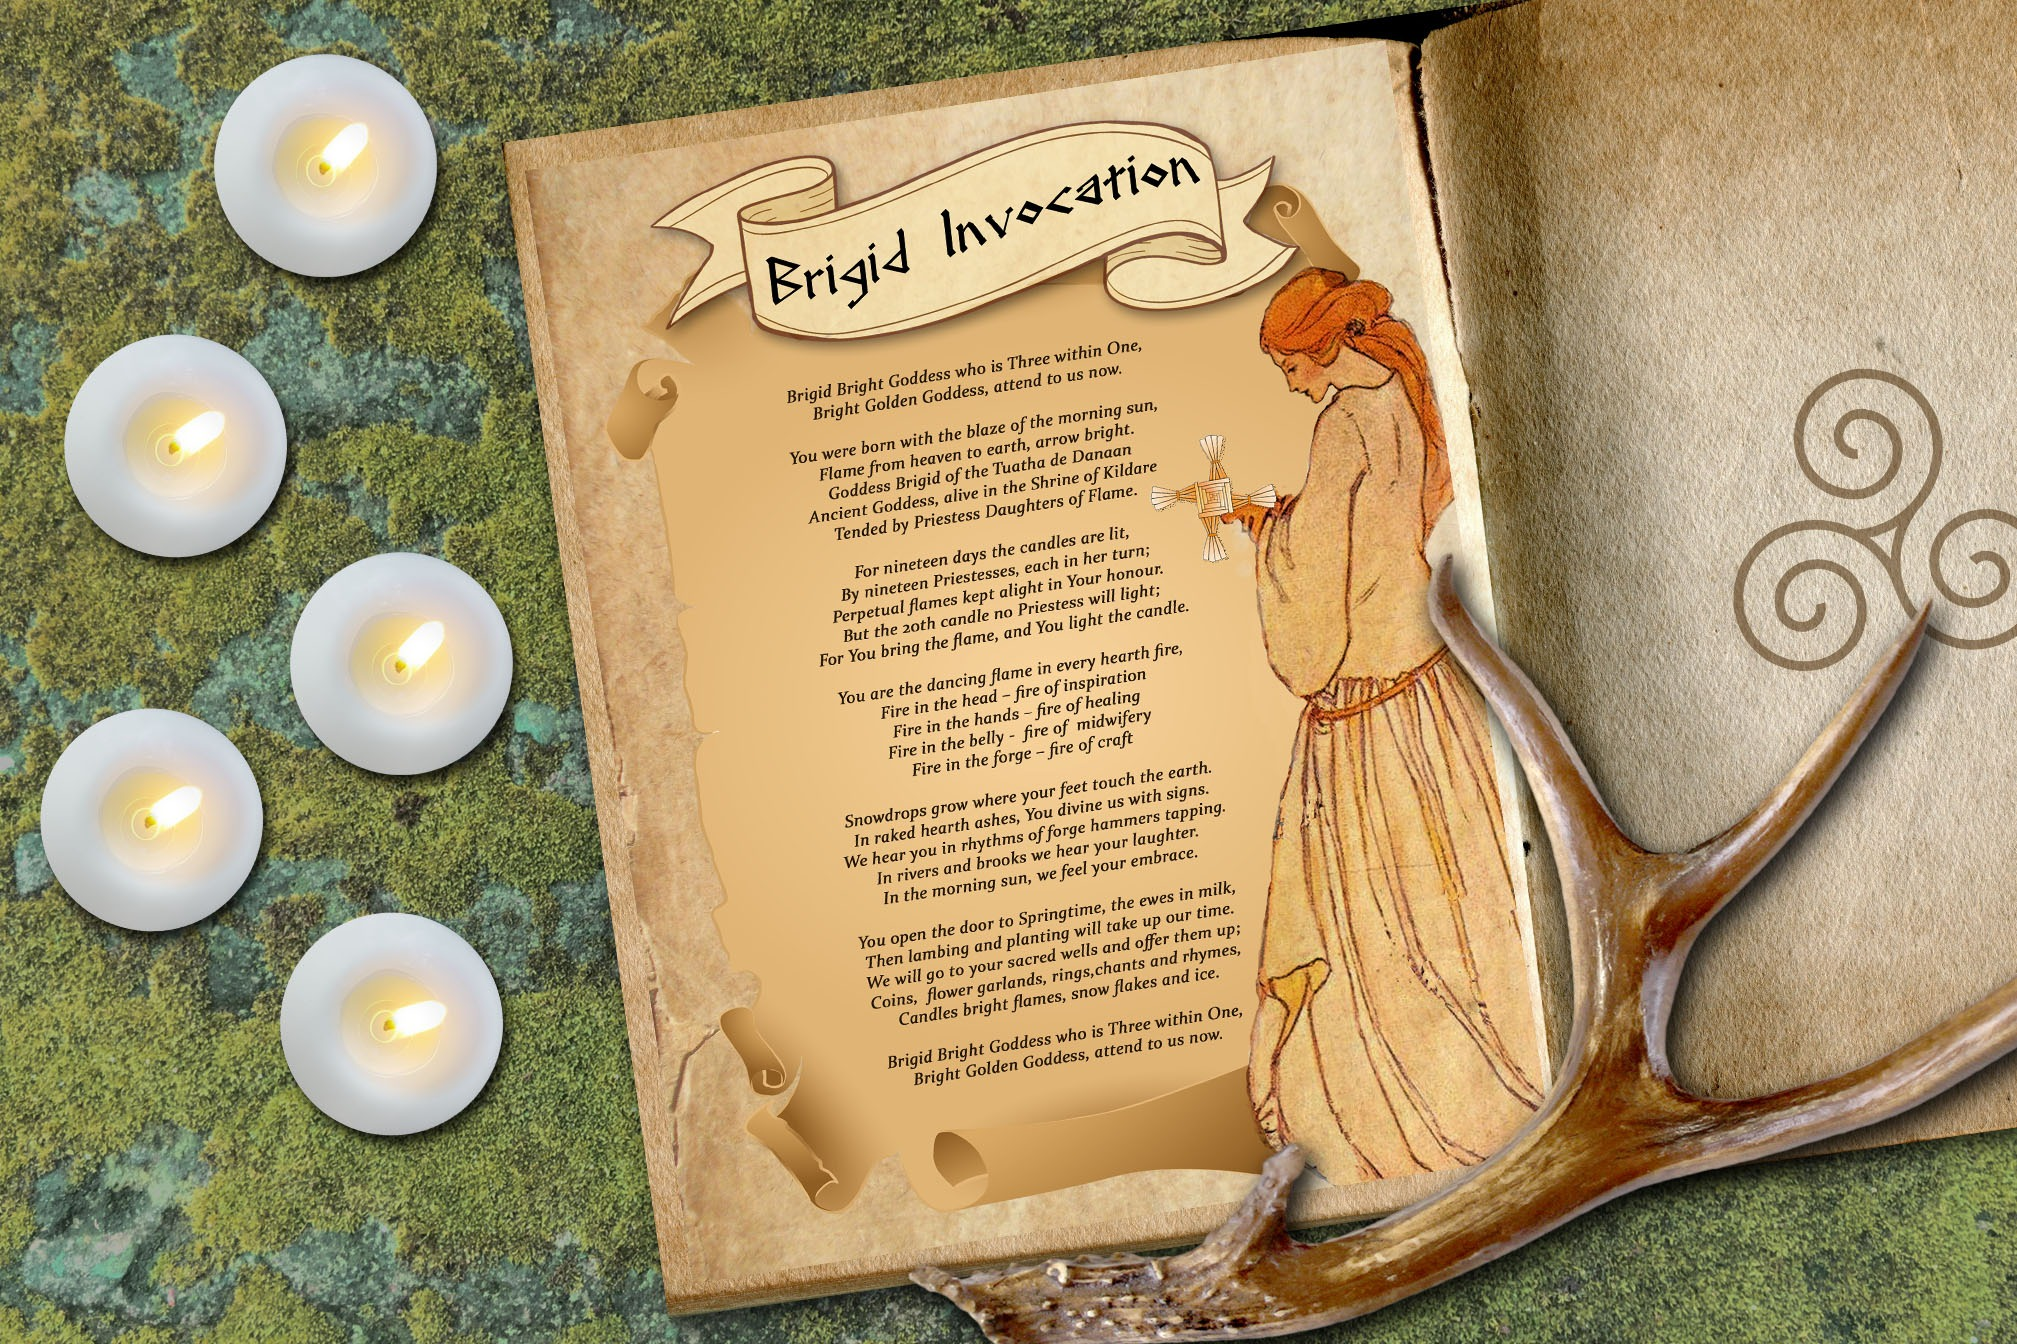 GODDESS BRIGID INVOCATION